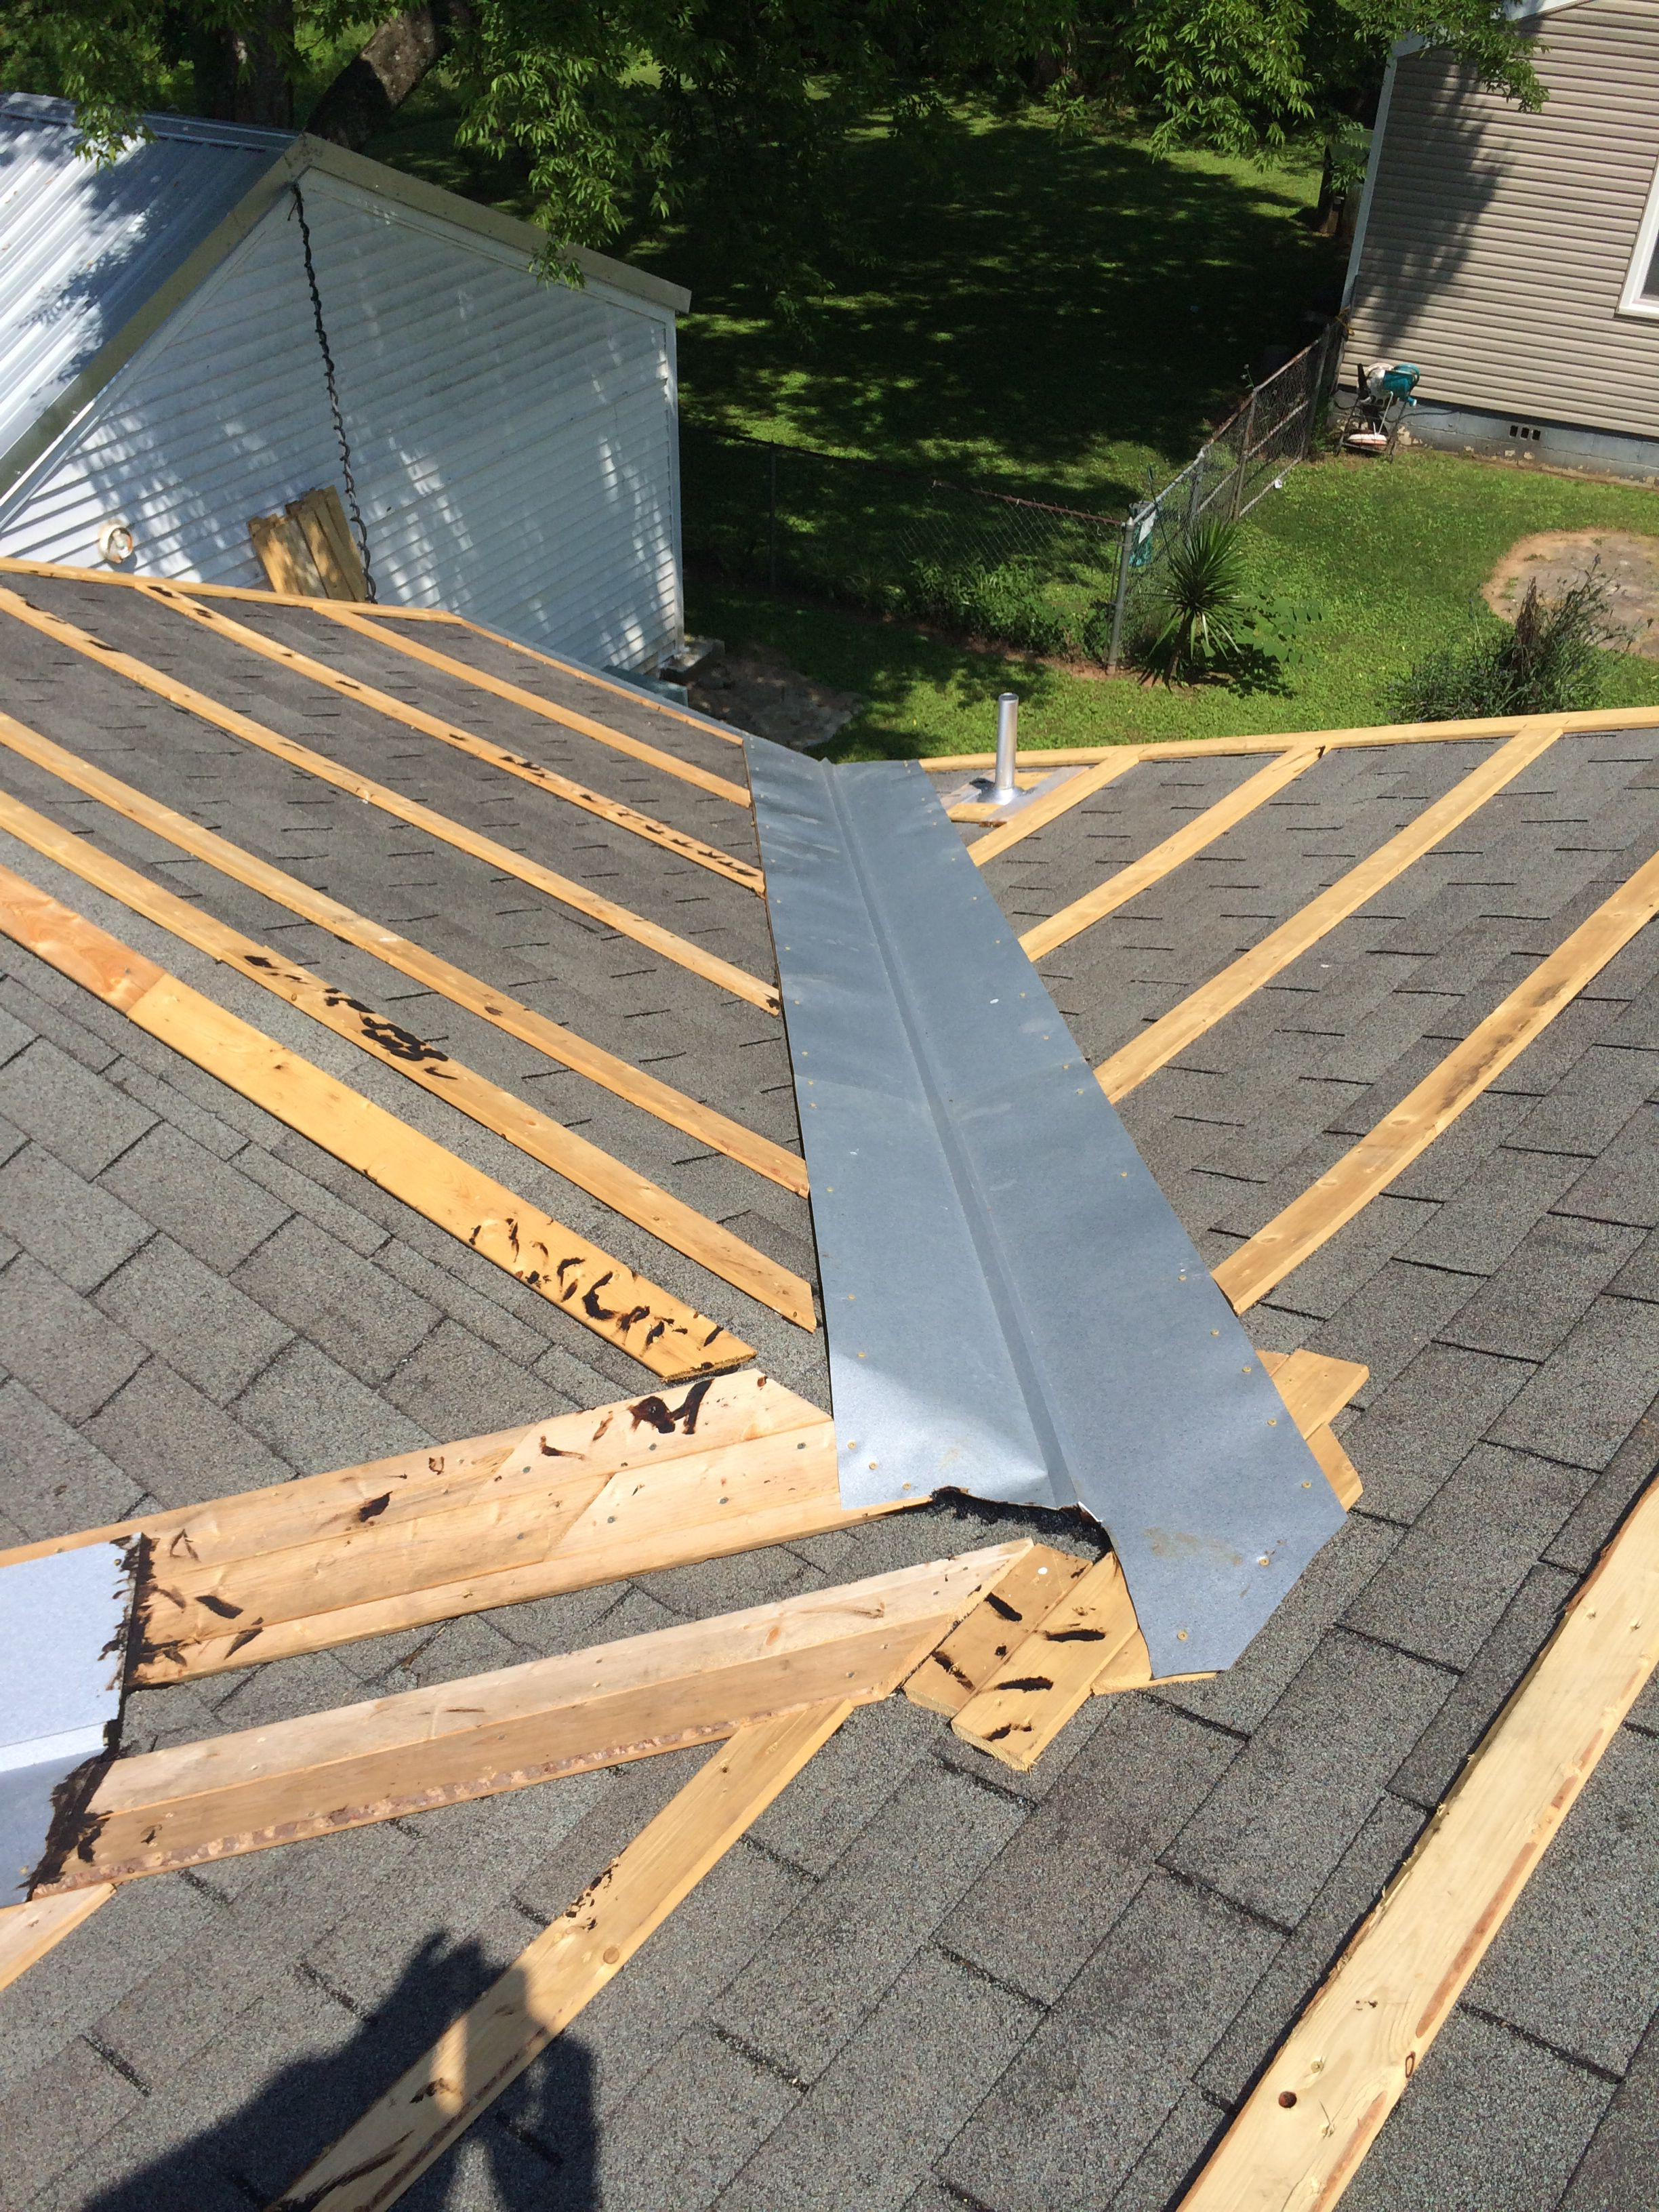 Valleys Metal roof, Building a house, Roof shingles